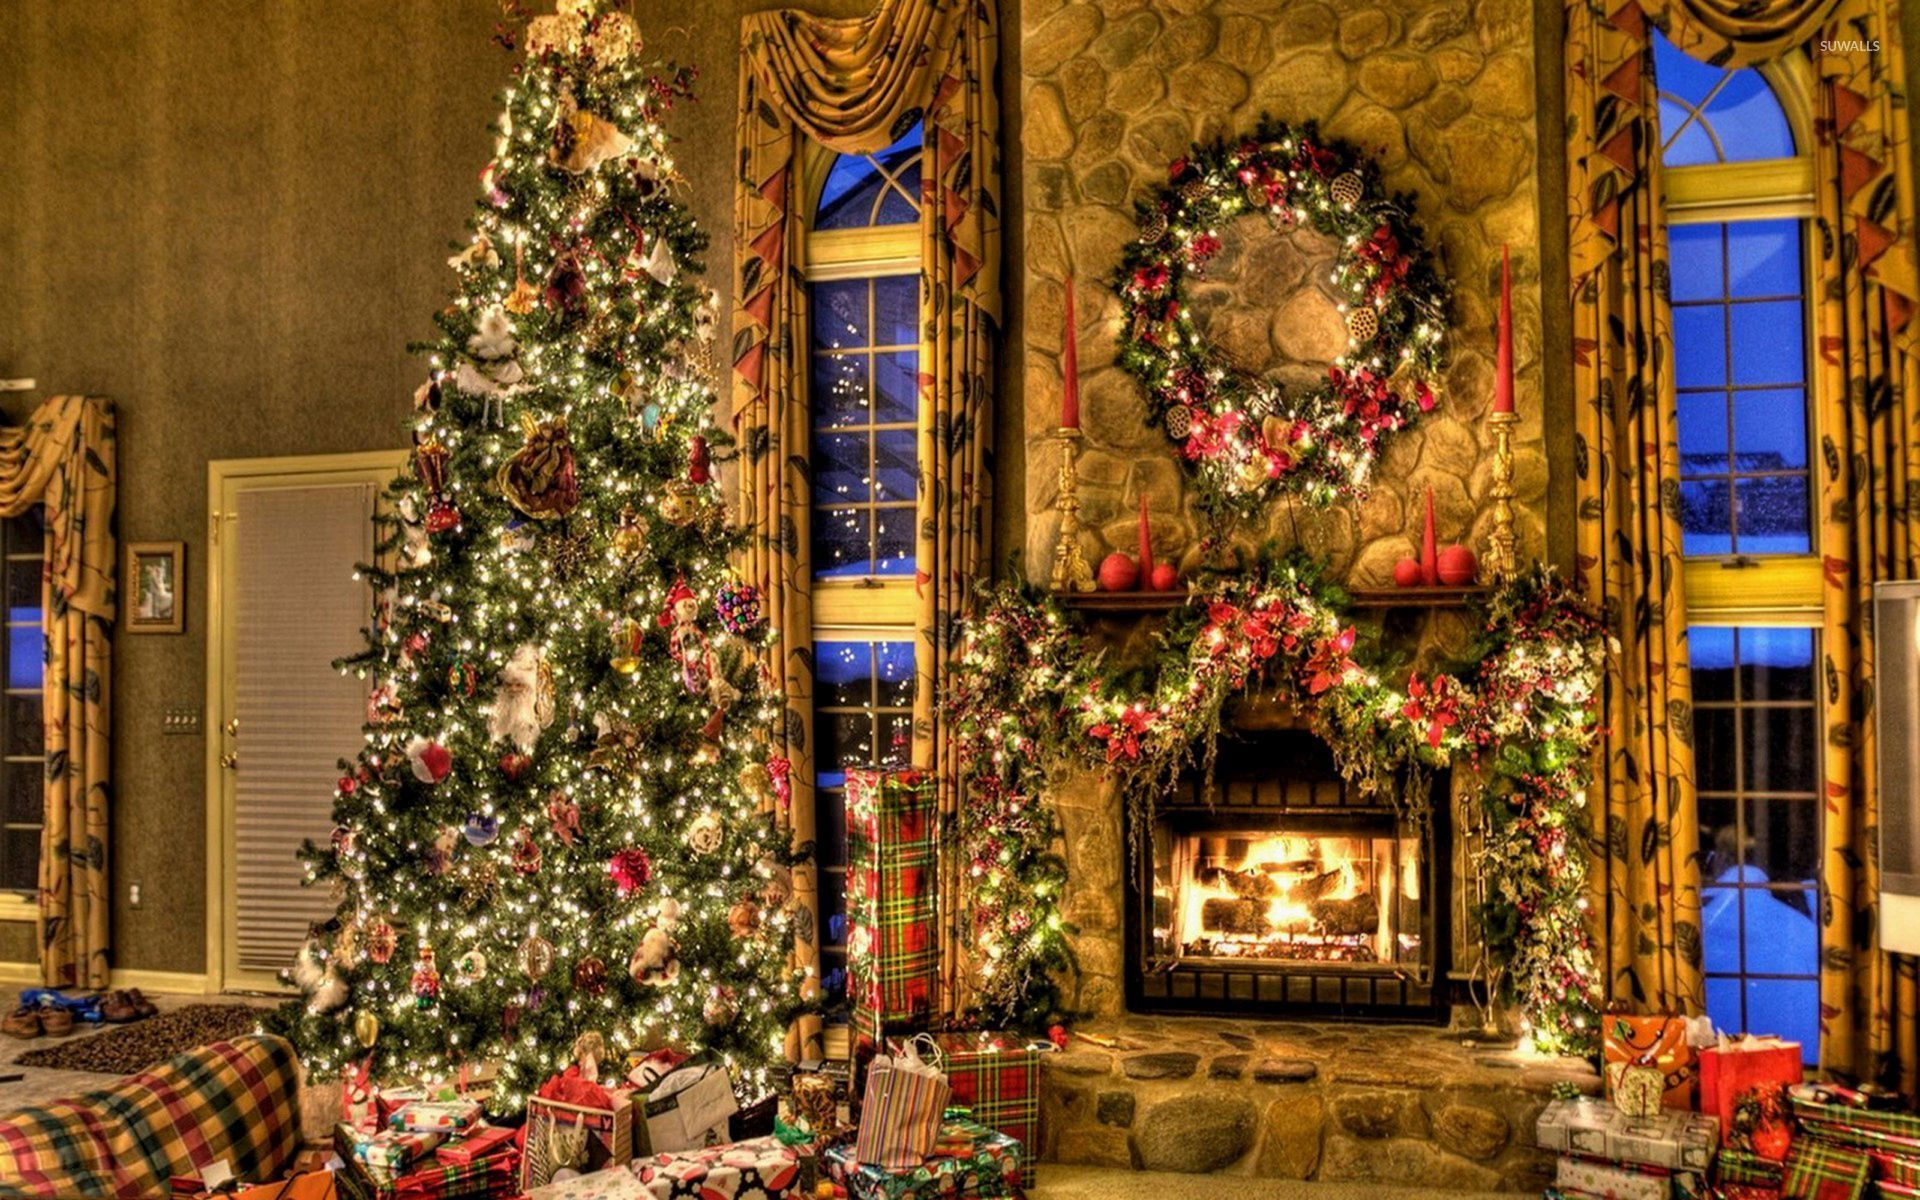 Christmas Fireplace Wallpaper Beautiful Christmas Tree By The Fireplace Wallpaper Holiday